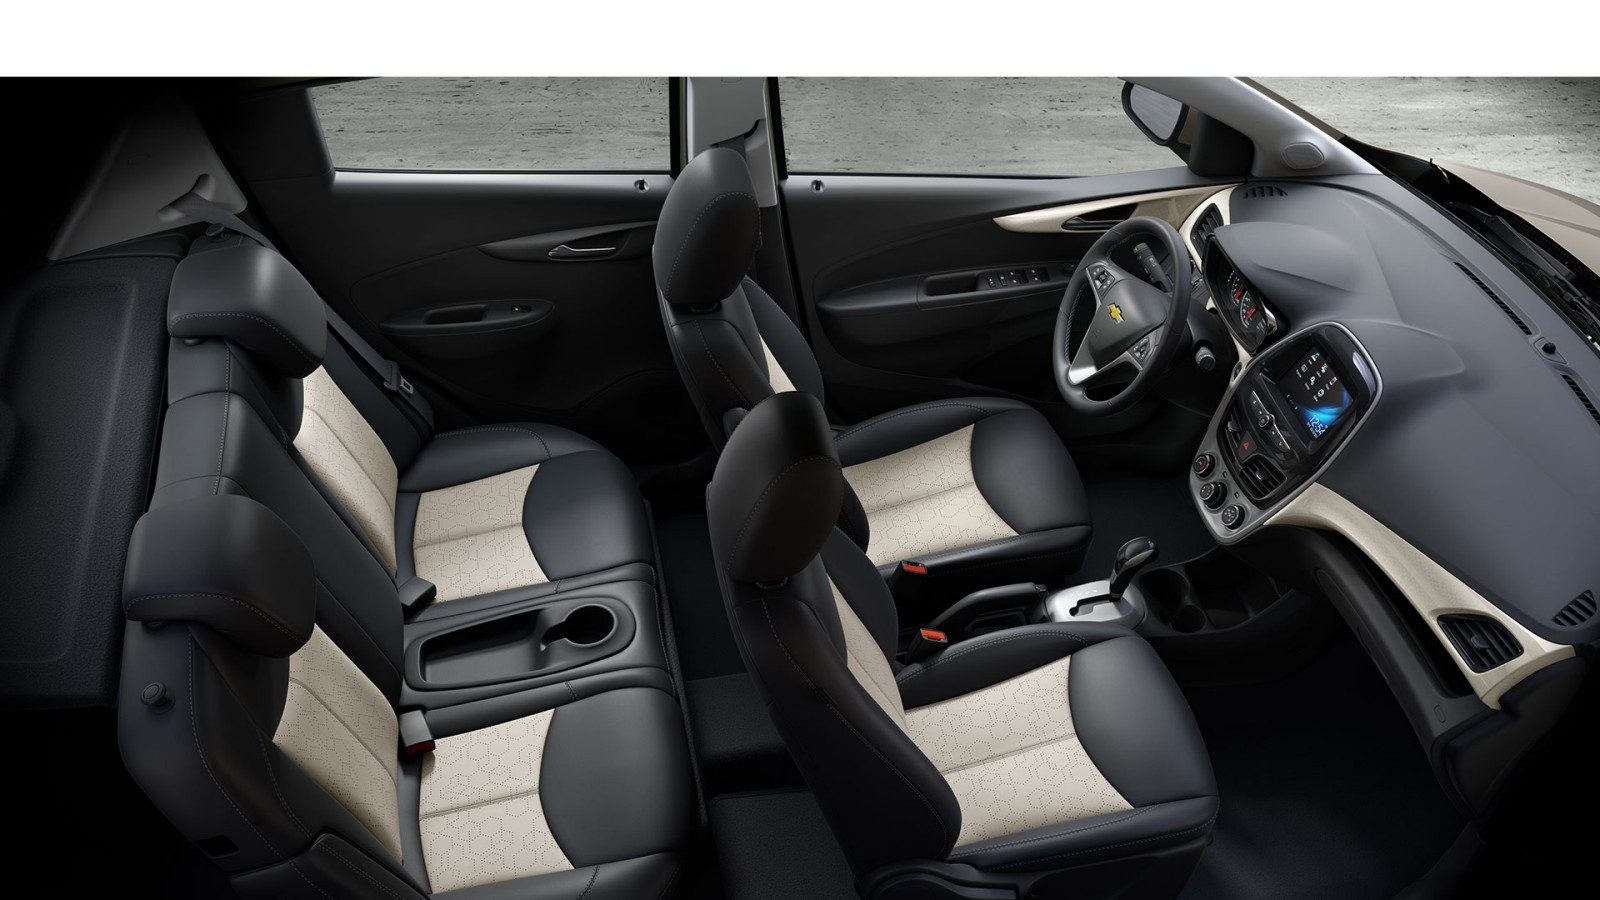 New Chevrolet Spark Interior main image